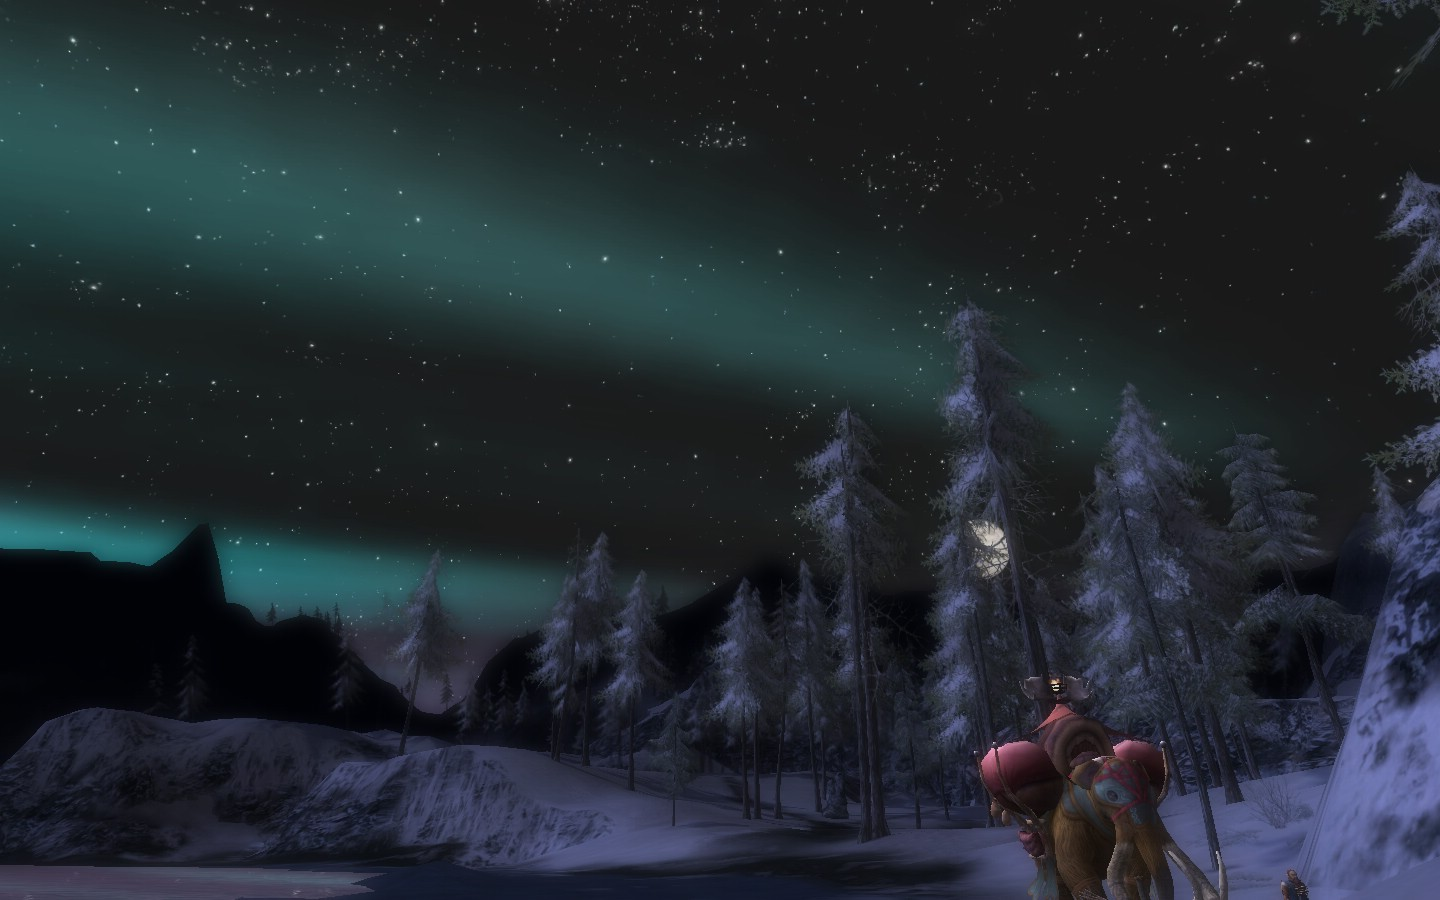 Lord of the Rings Online - Northern Lights in Middle Canada